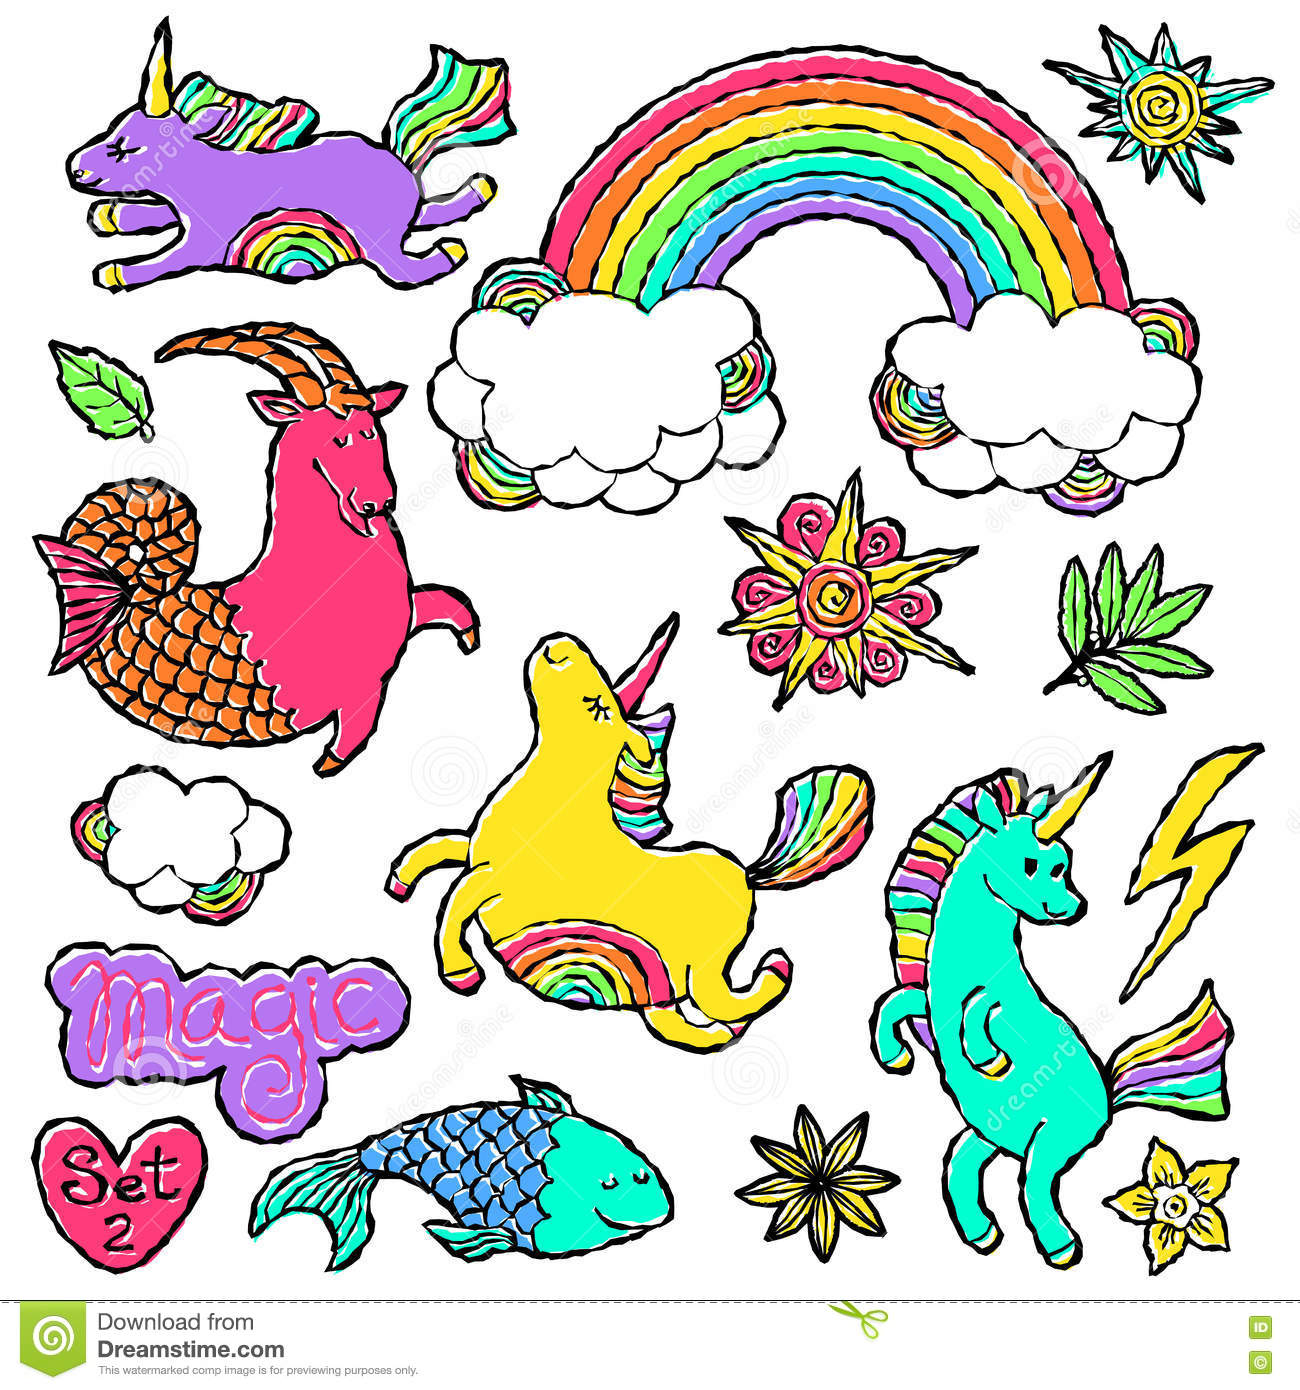 Fashion patch badge elements in cartoon 80s-90s comic style. Set modern trend doodle pop art sketch.